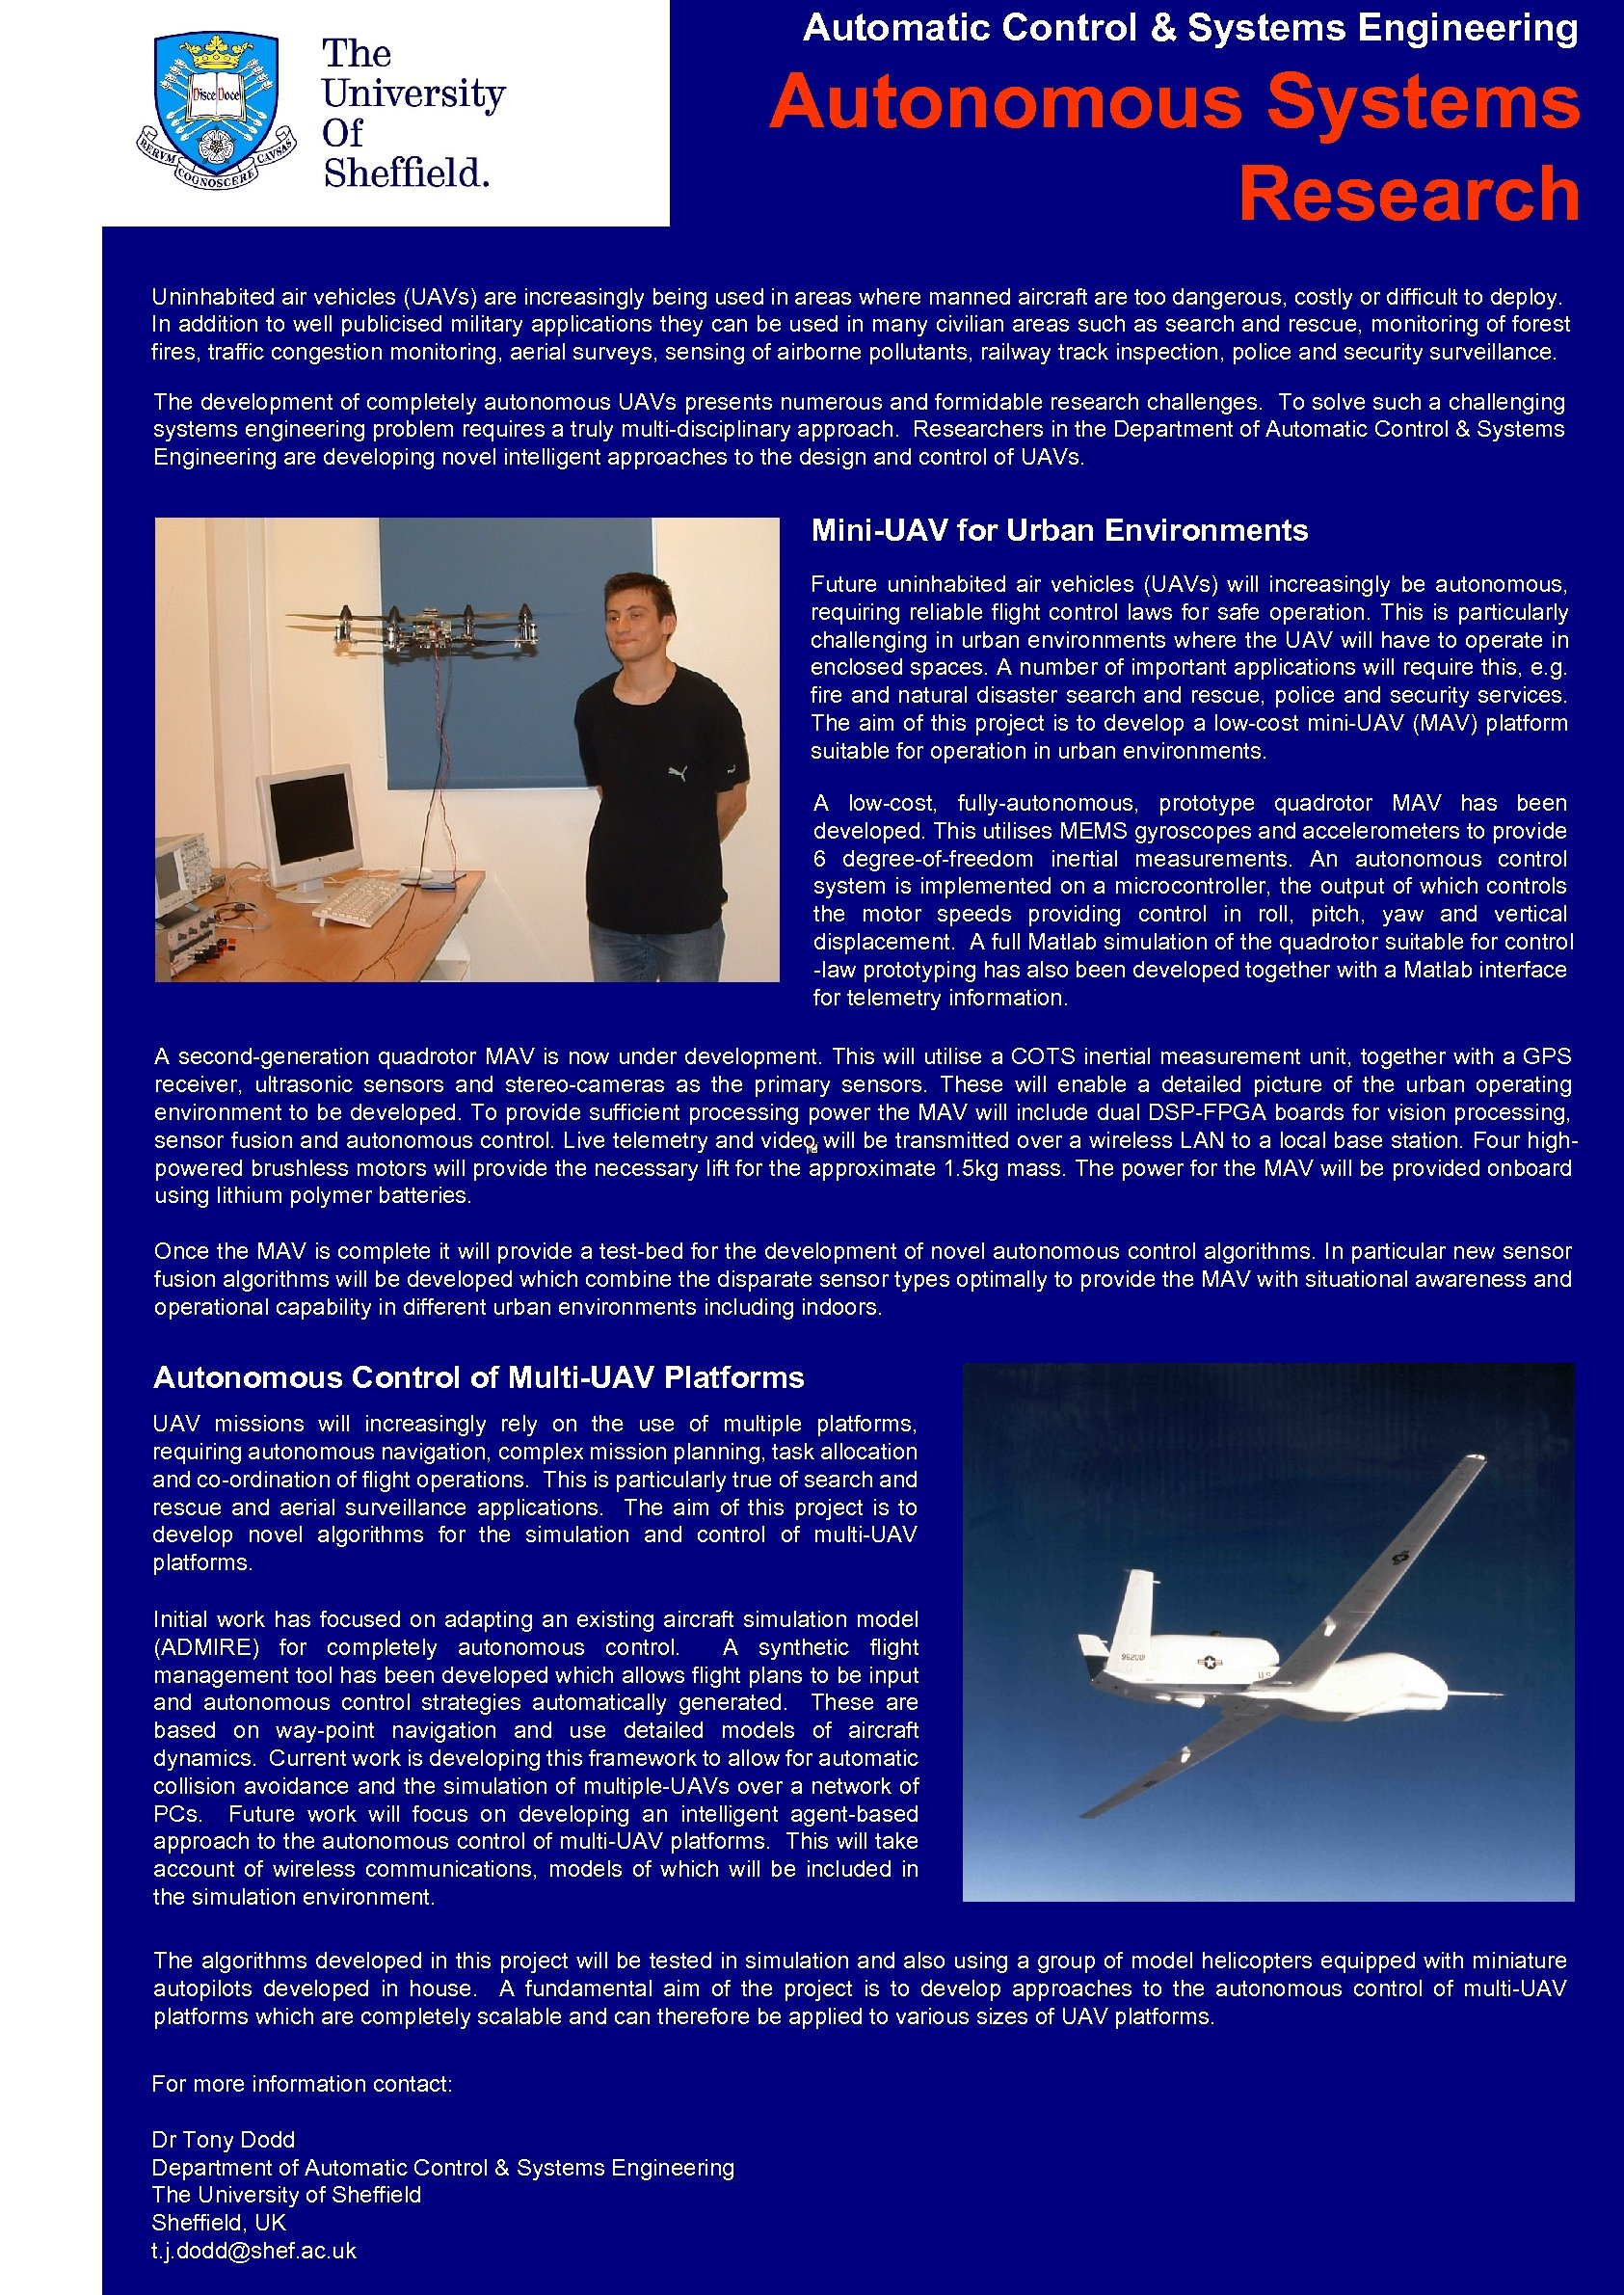 Automatic Control & Systems Engineering Autonomous Systems Research Uninhabited air vehicles (UAVs) are increasingly